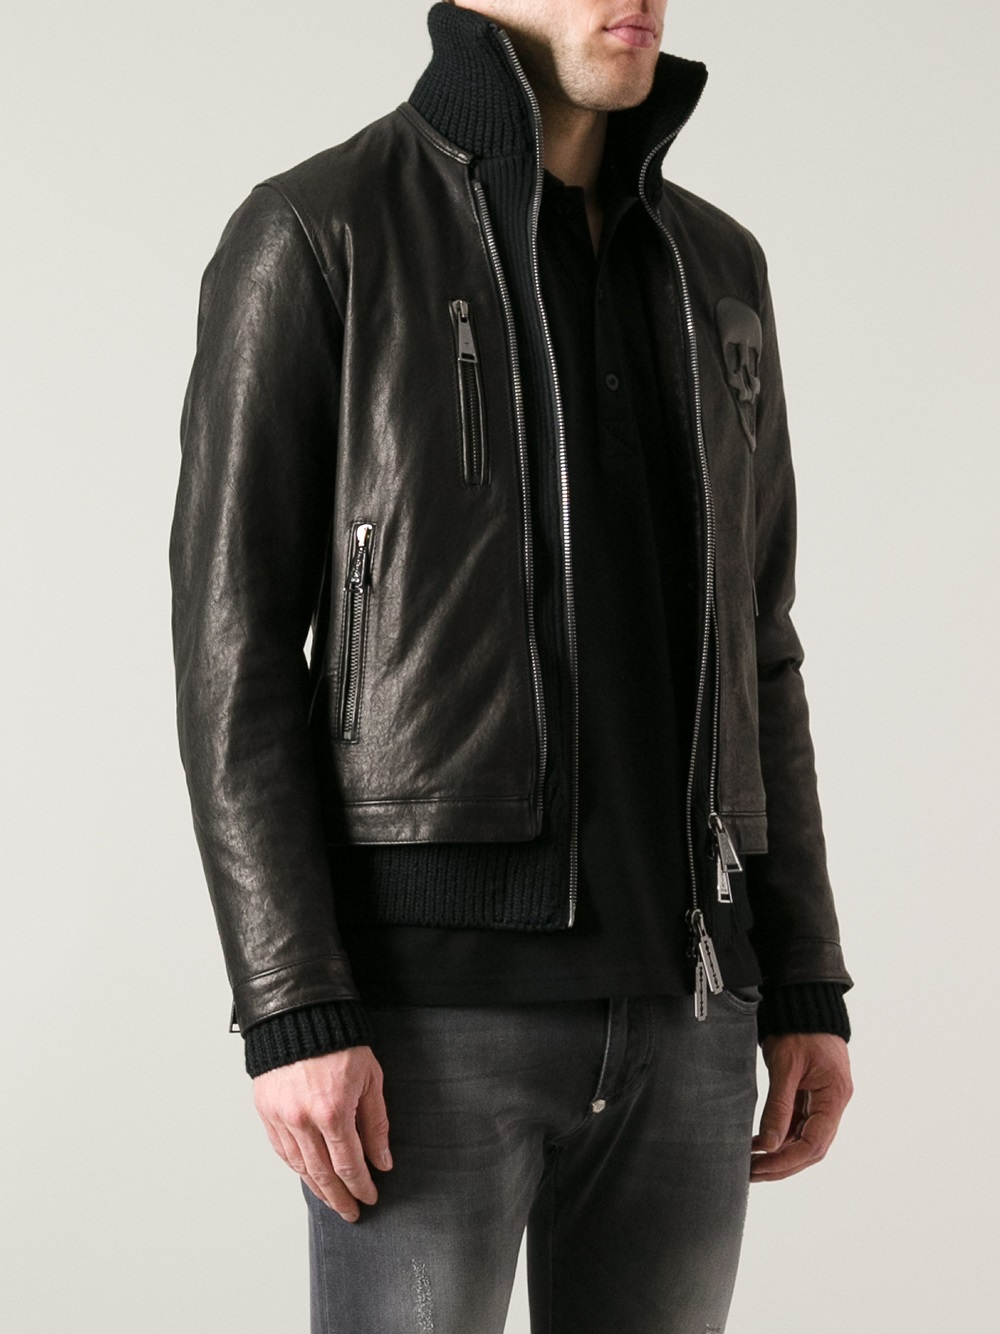 philipp plein cotton biker jacket in black for men lyst. Black Bedroom Furniture Sets. Home Design Ideas